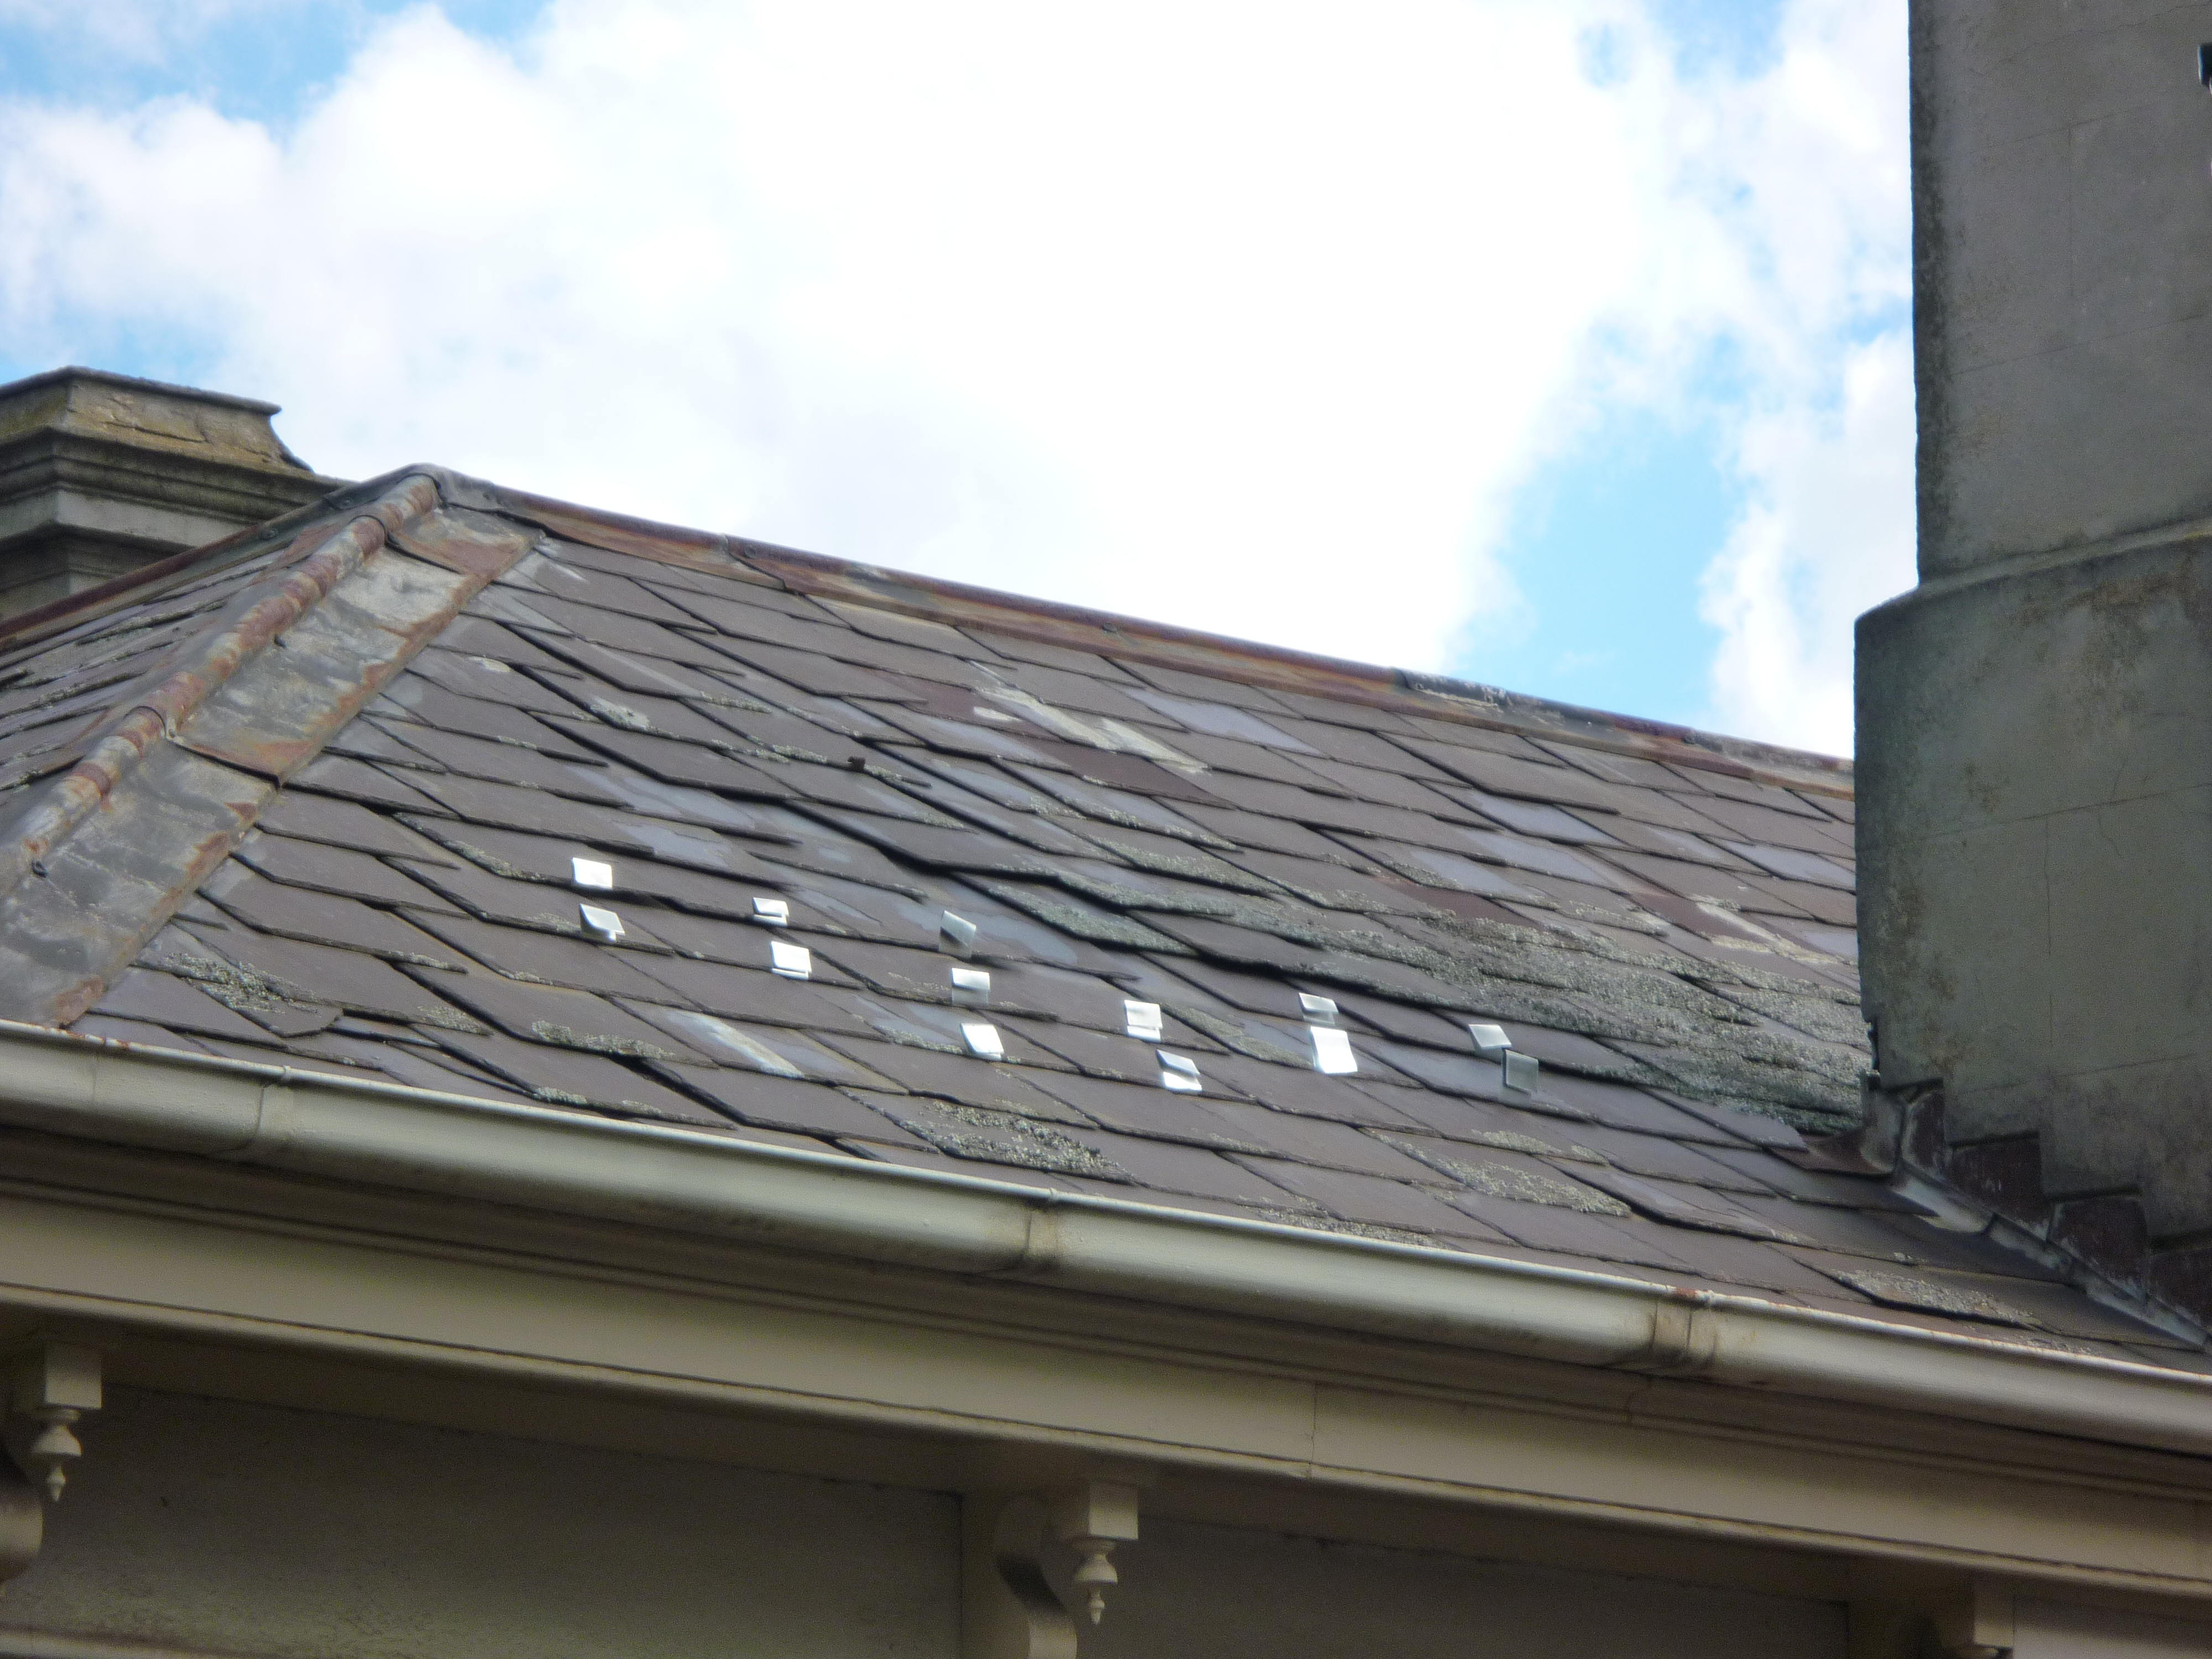 Melbourne Specialist Slate Roofers Roof Slating Services